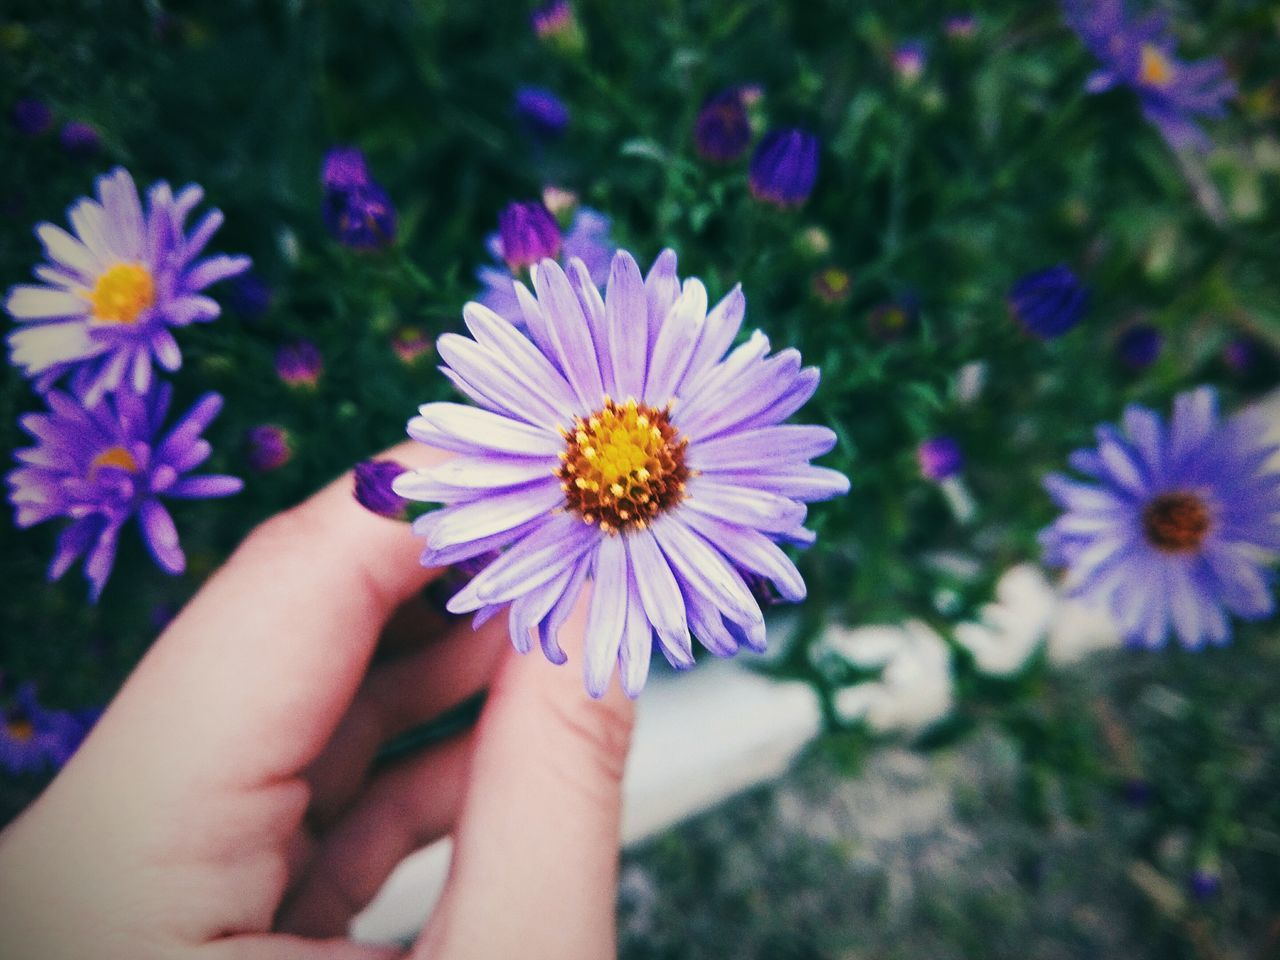 flower, human hand, human body part, fragility, beauty in nature, real people, nature, petal, flower head, freshness, growth, outdoors, one person, day, lifestyles, close-up, plant, multi colored, people